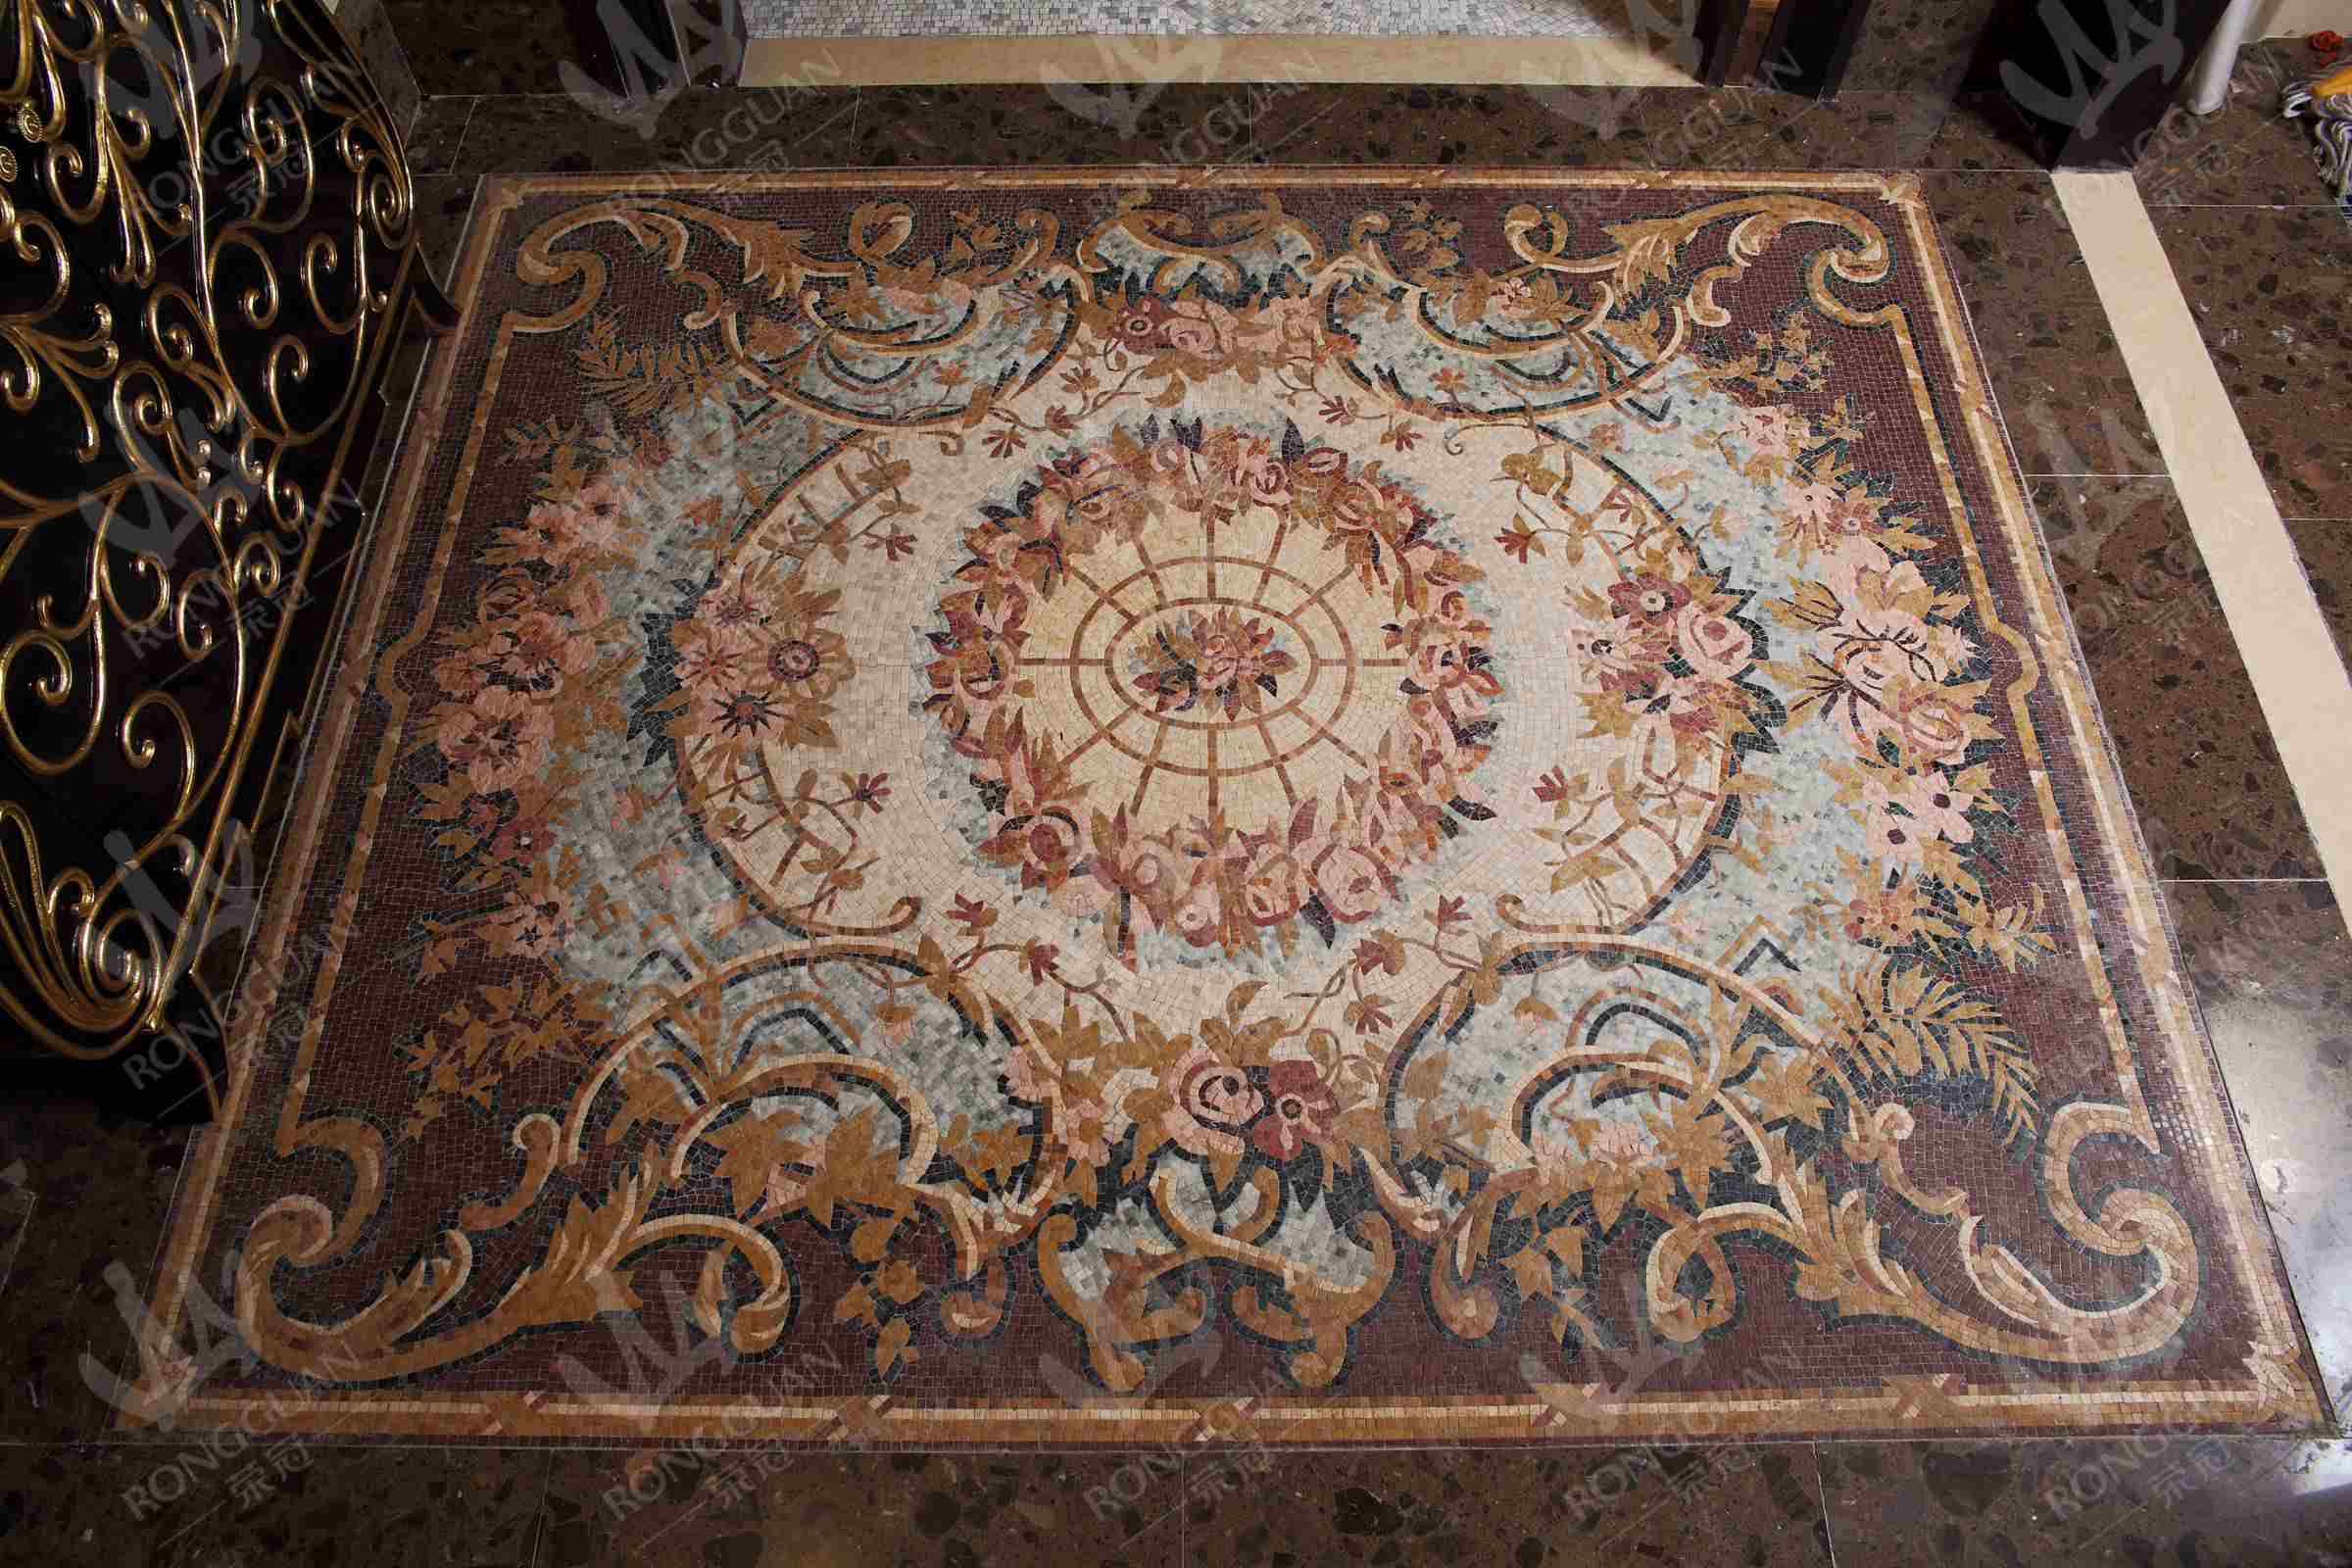 China Marble Mosaic Art Design For Floor Carpet Photos